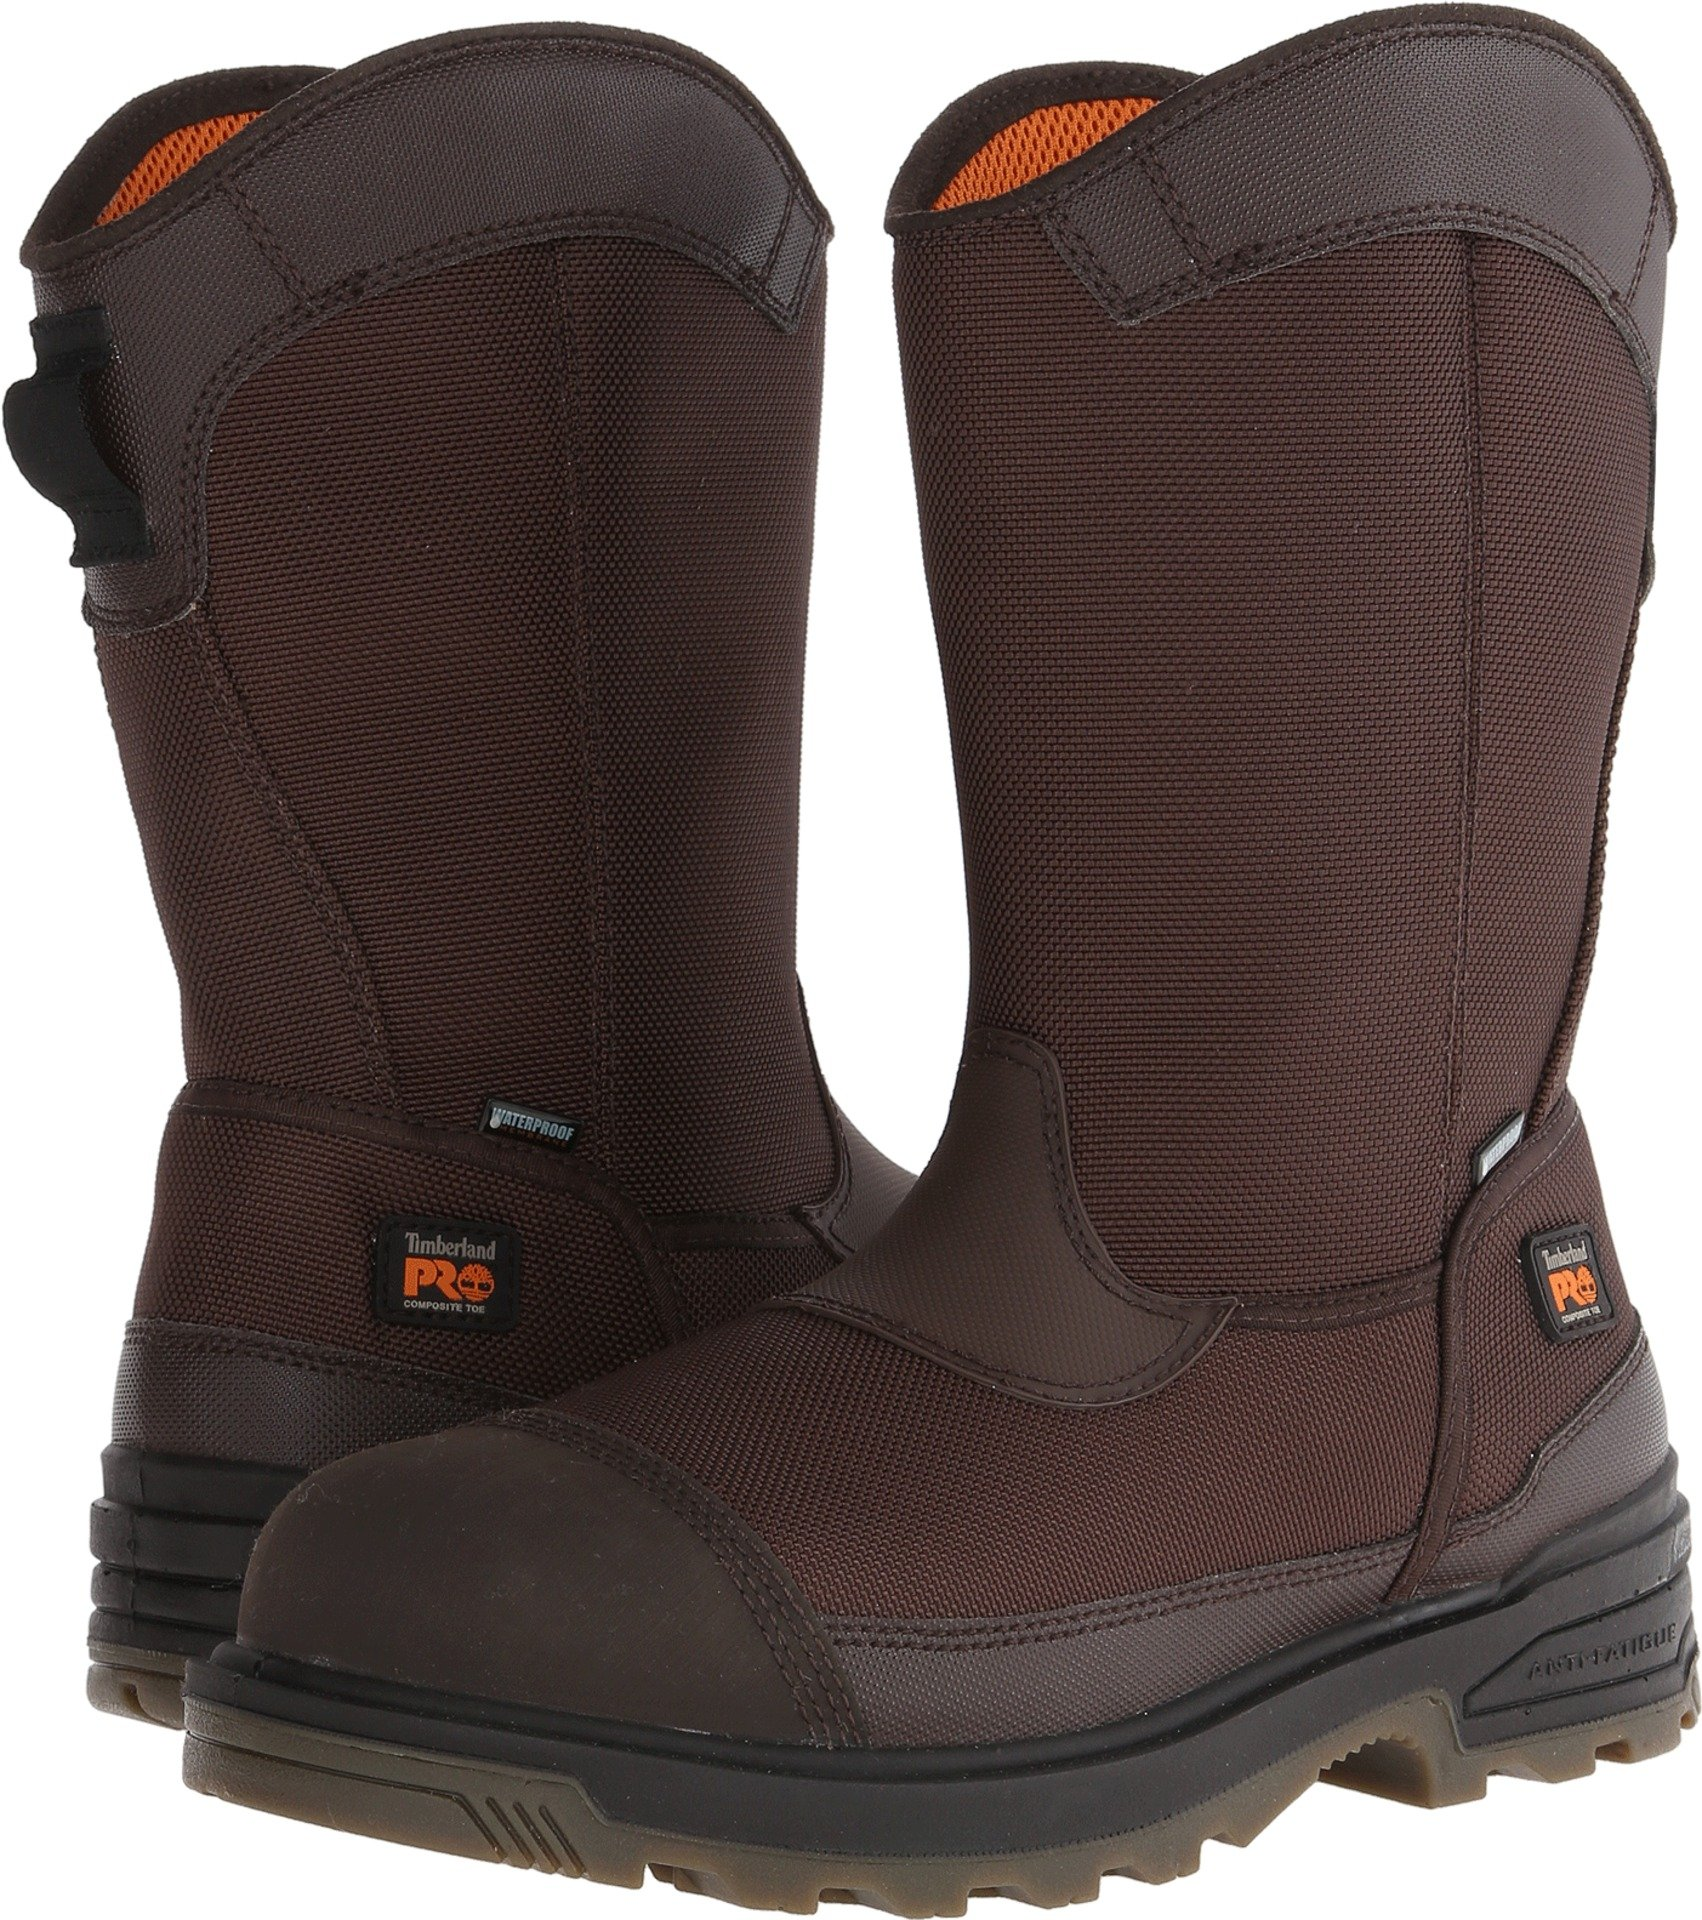 Timberland PRO Men's Mortar Pull-On CSA Comp Toe Waterproof Work and Hunt Boot, Brown Ballistic Nylon, 7.5 W US